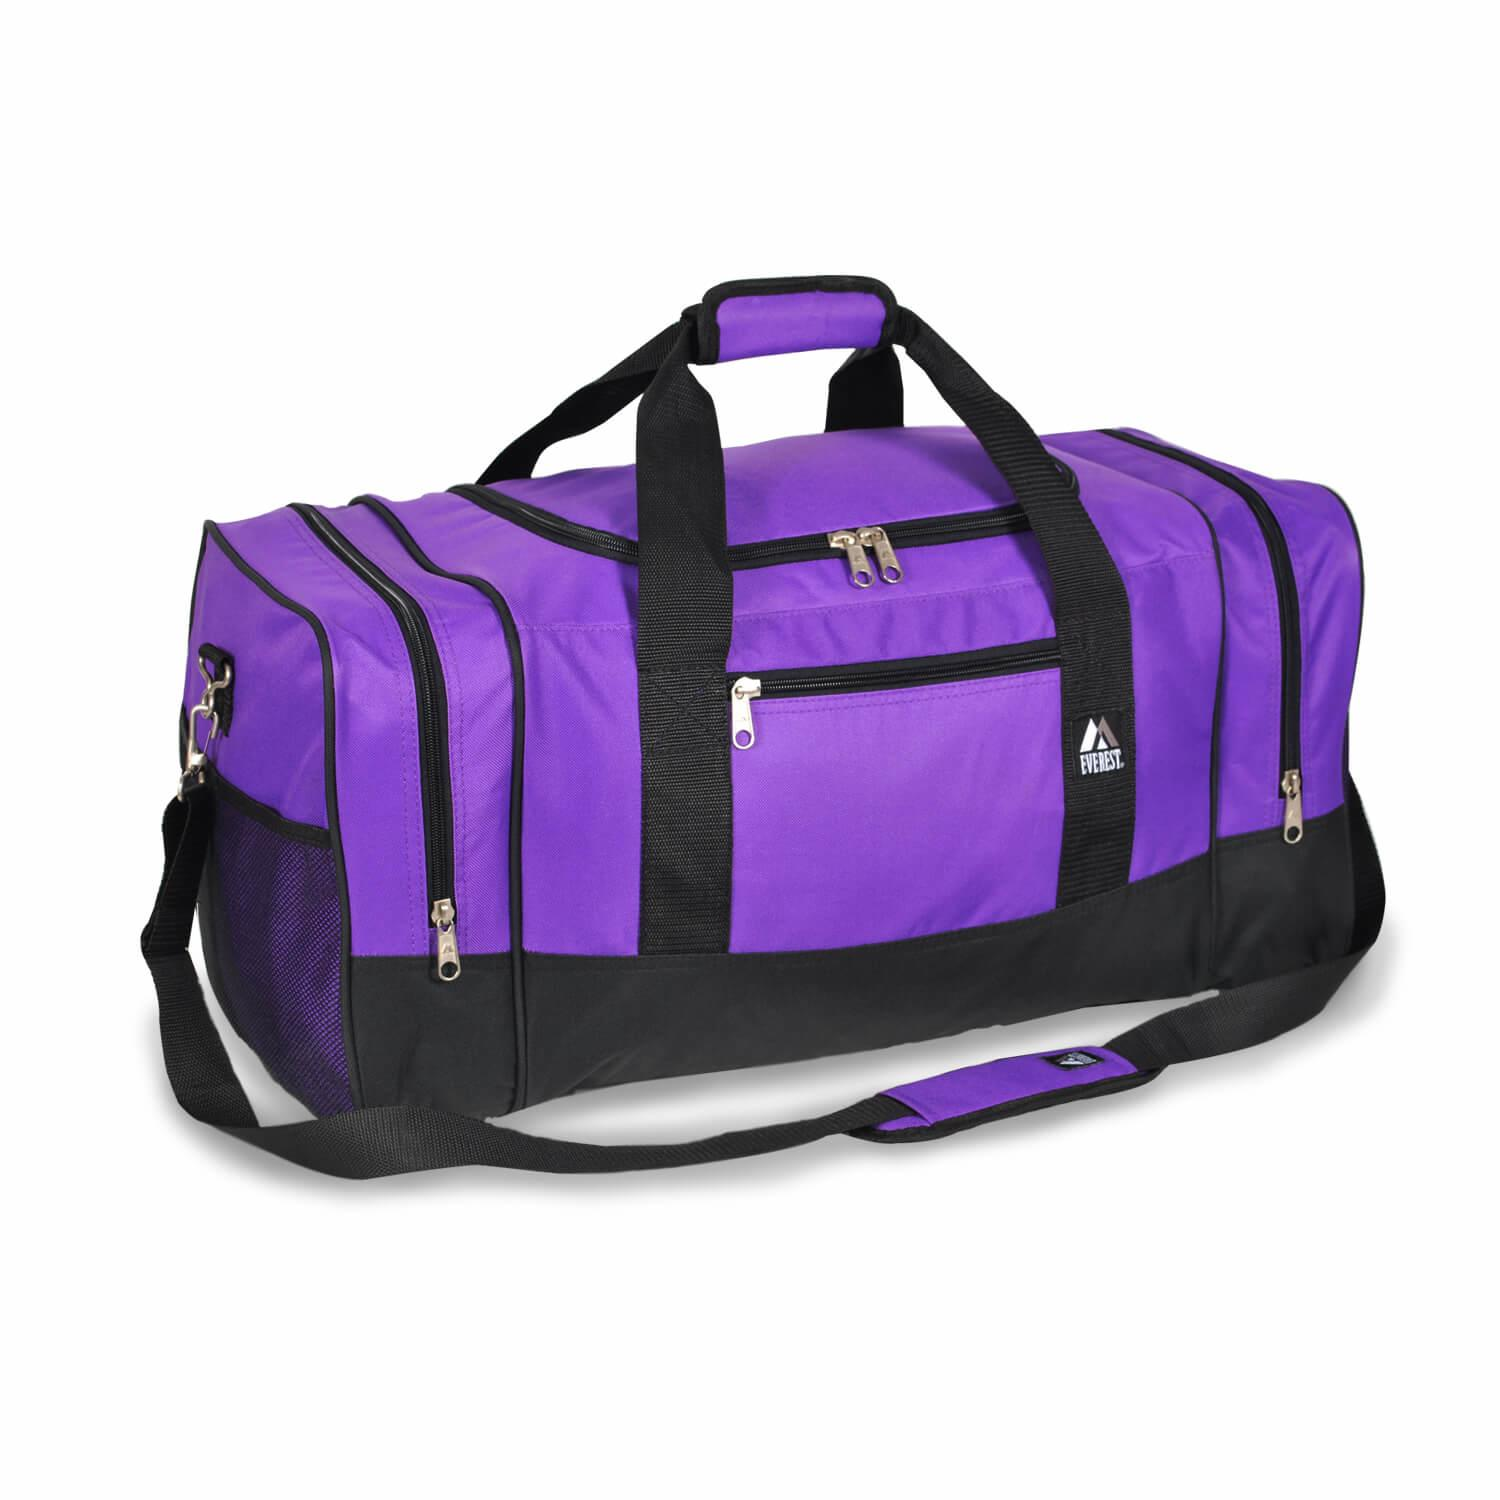 A Stylish Gym Bag Which Can Stow Away Lot Of Sports Gear The Is Durable Nice Light Weight Features Very Spacious Main Compartment